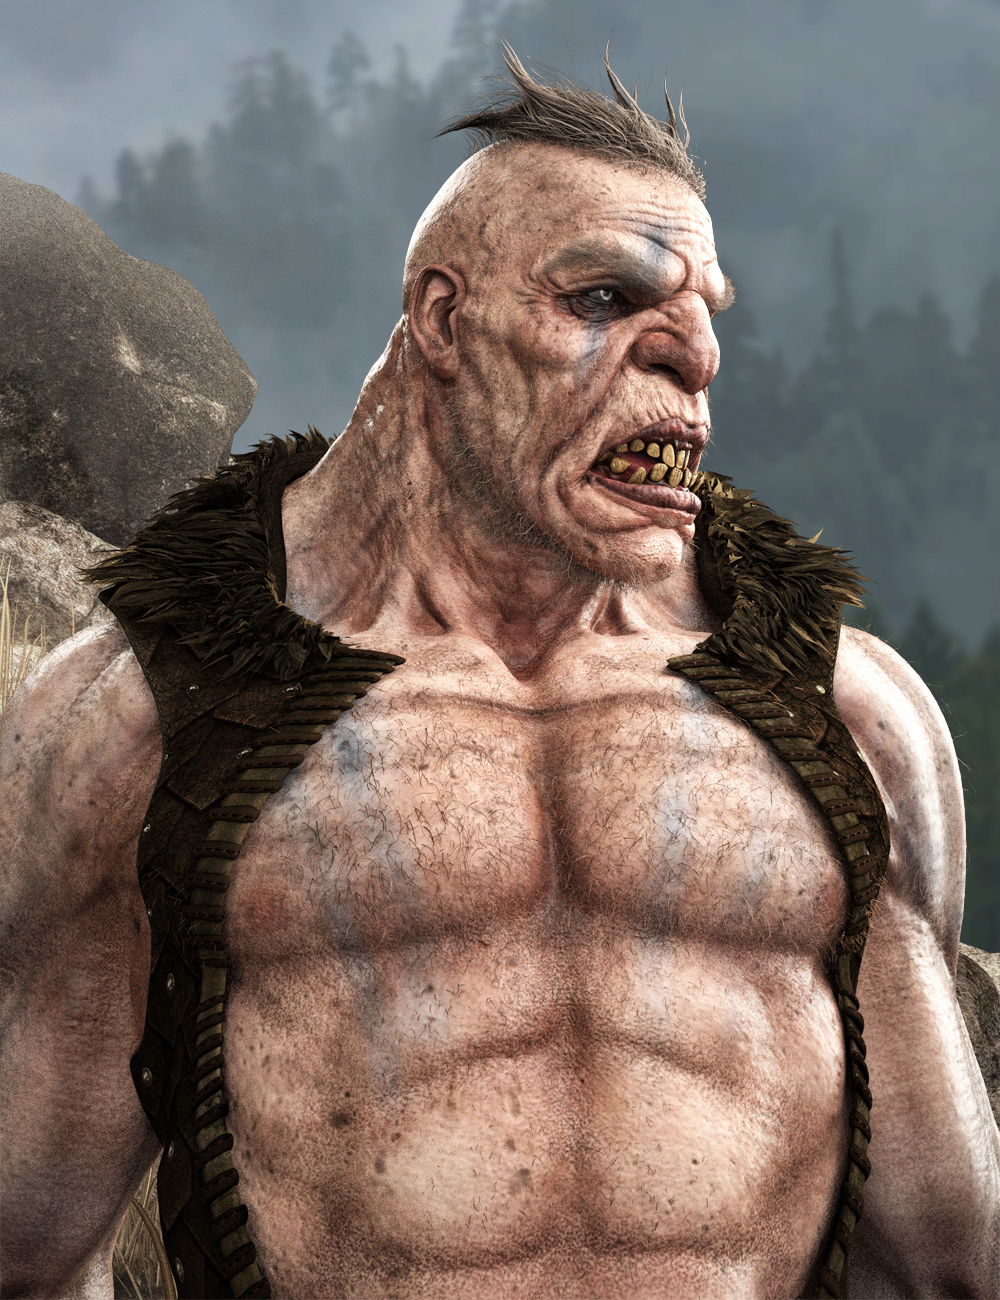 Giant HD for The Brute 8 by: , 3D Models by Daz 3D